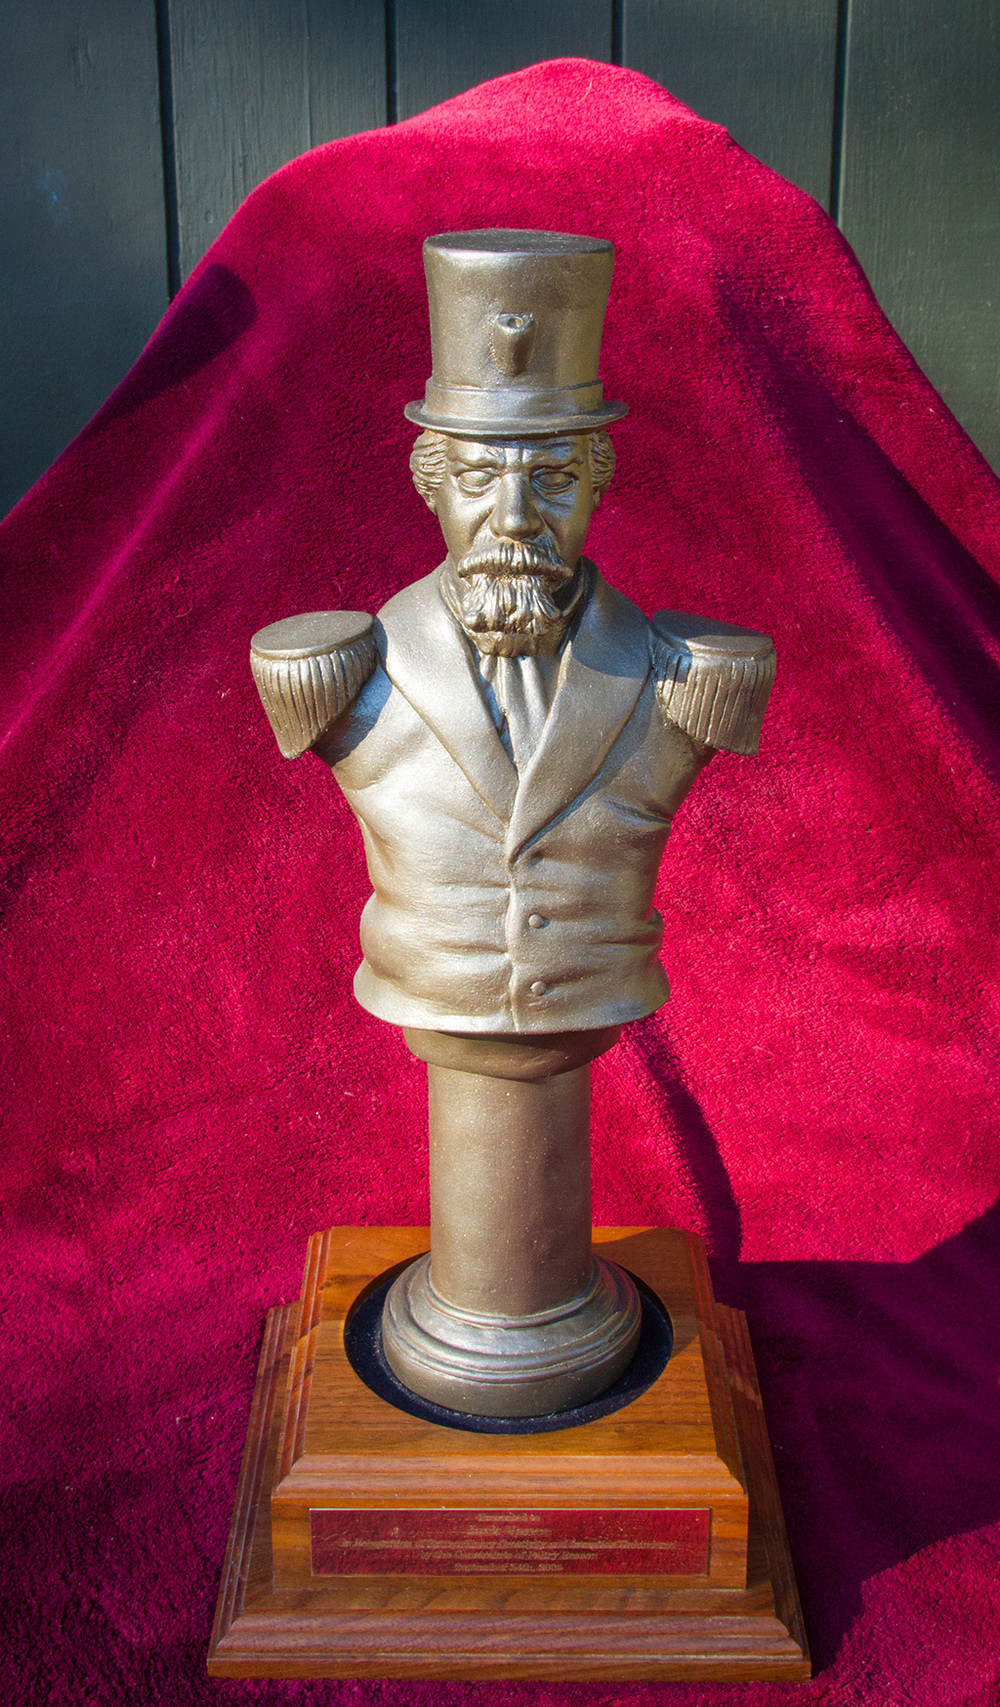 """The  Emperor Norton Award , known as """"the Joshua,""""originally designed and sculpted in 2003 by Paul Groendes.  The award is given annually by Tachyon Publications and Borderland Books for """"extraordinary invention and creativity unhampered by the constraints of paltry reason.Source:  Jack Vance ."""